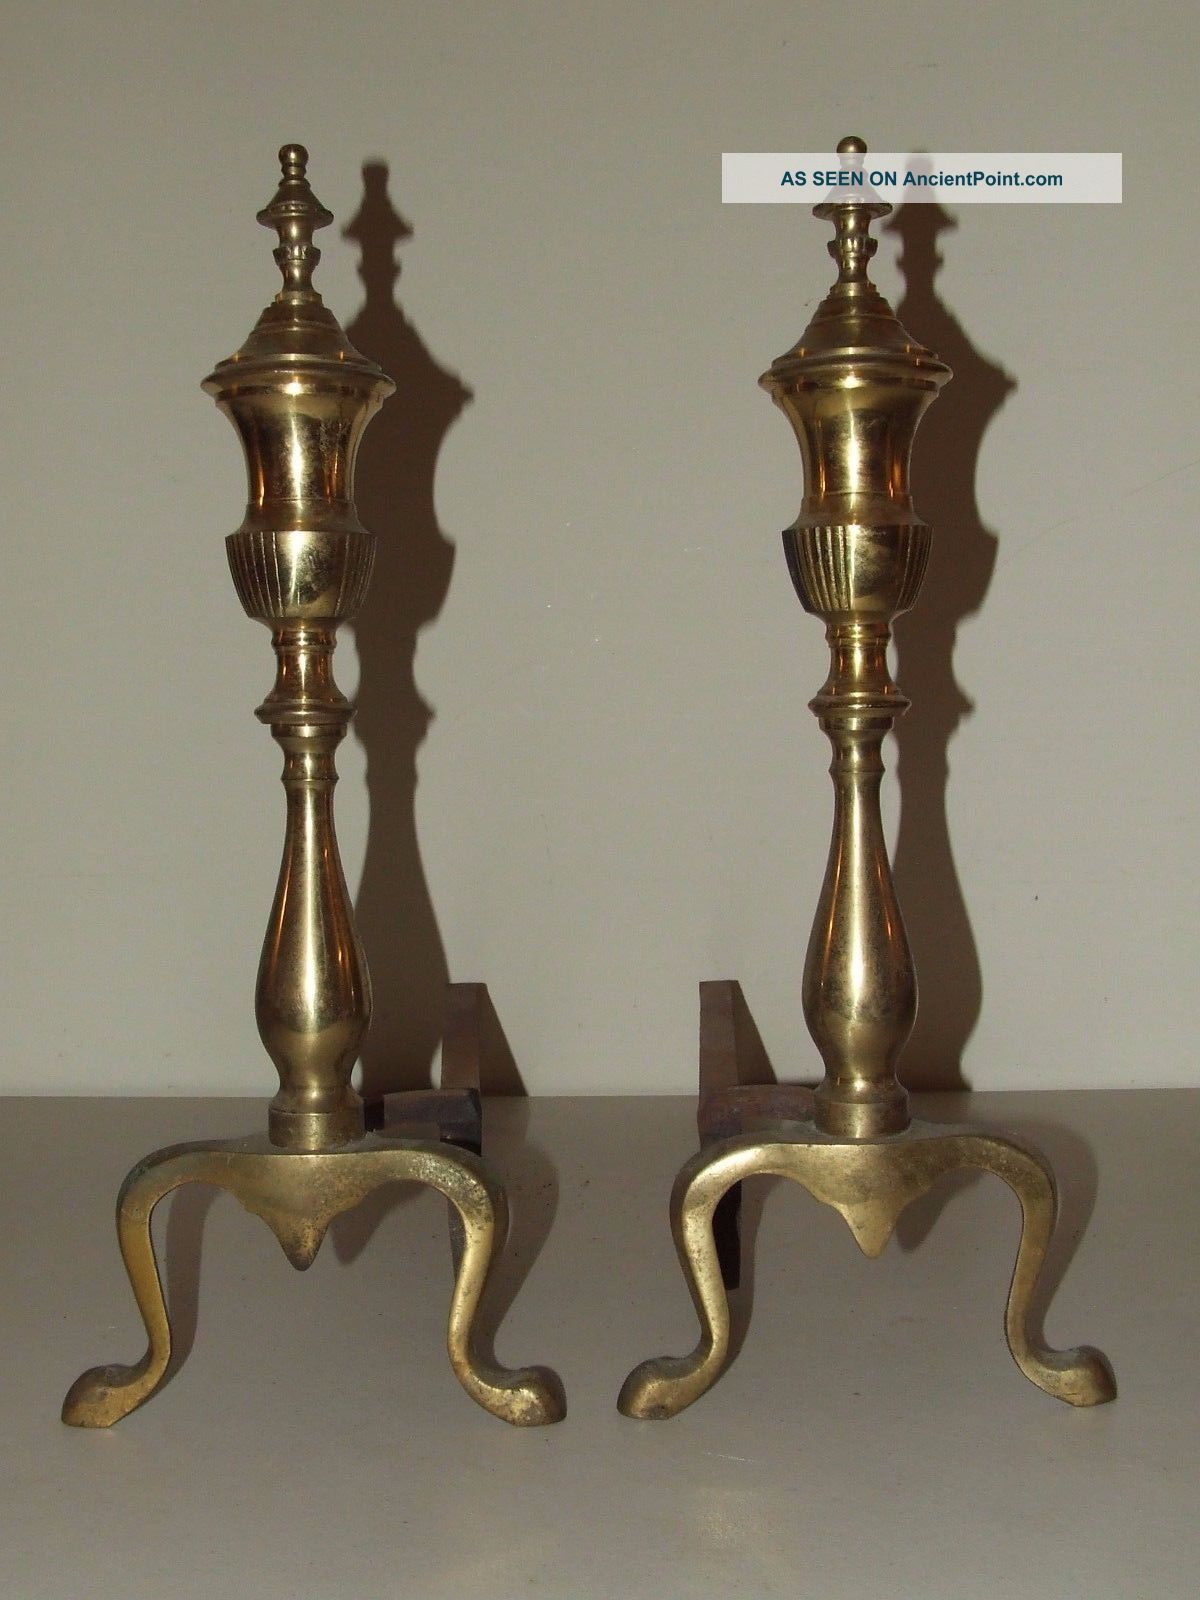 Vintage Brass French Victorian Style Fireplace Andirons Fireplaces & Mantels photo